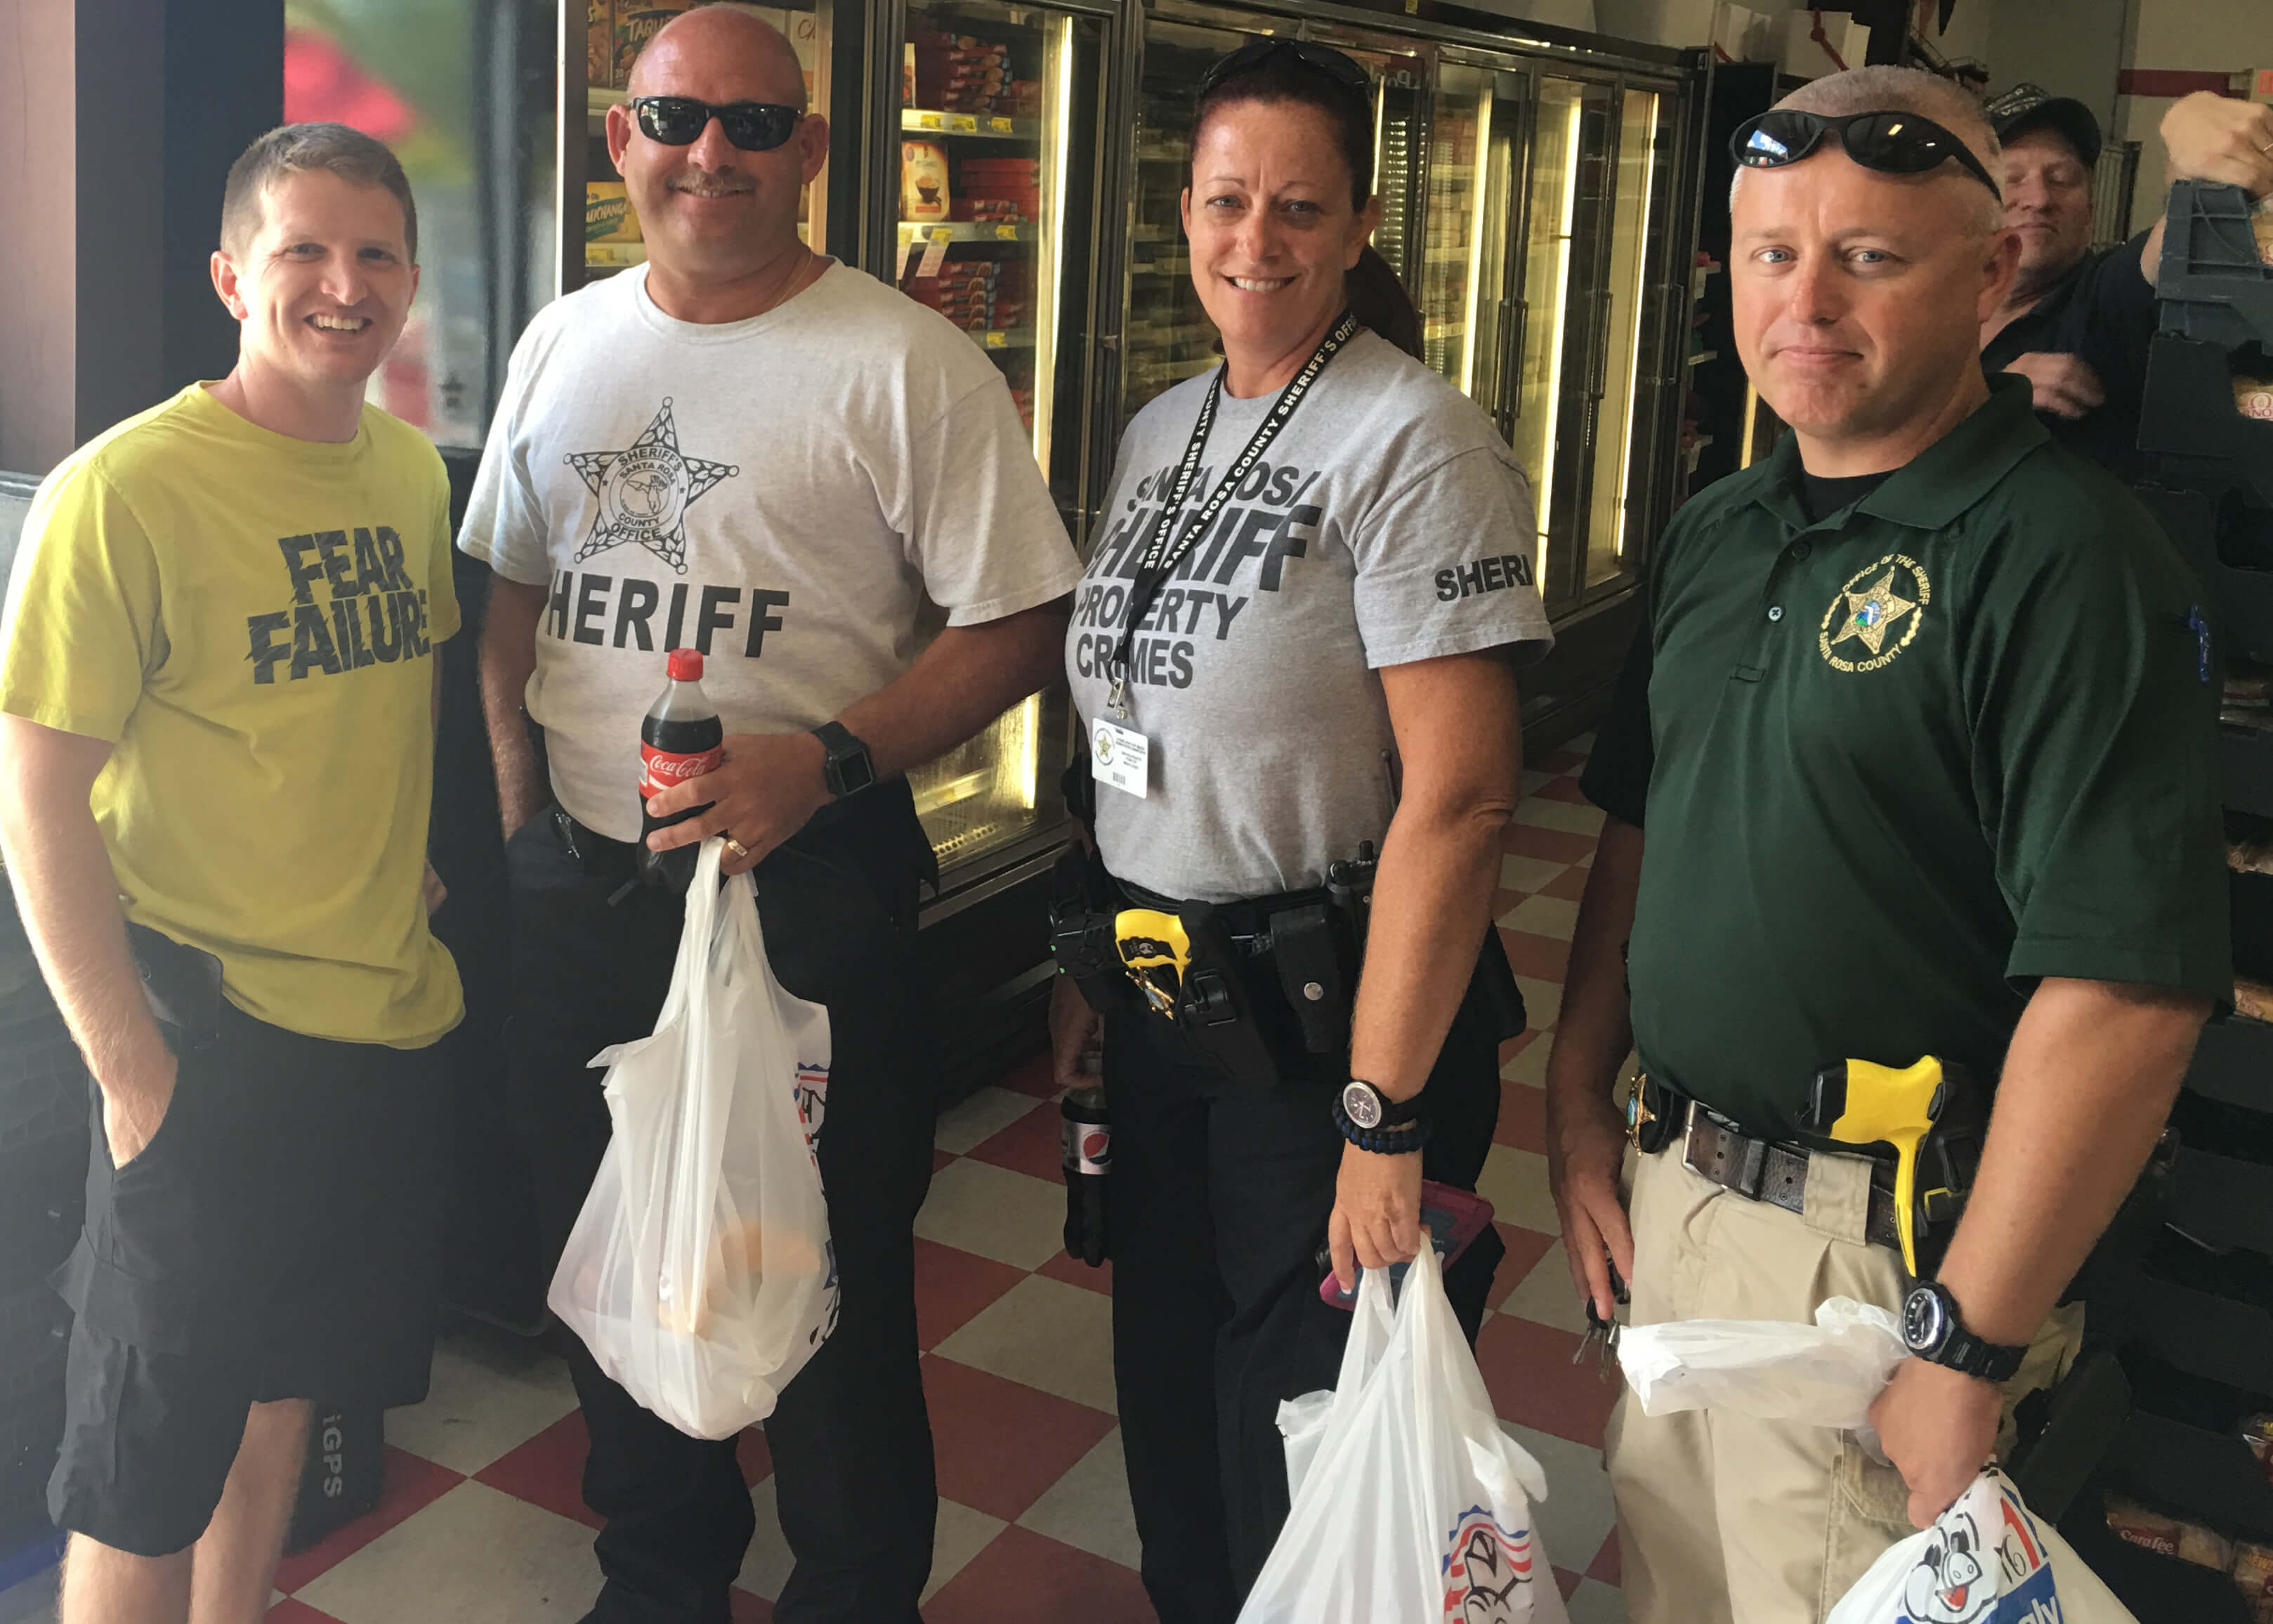 James Raffield and Santa Rosa police officers at Piggly Wiggly